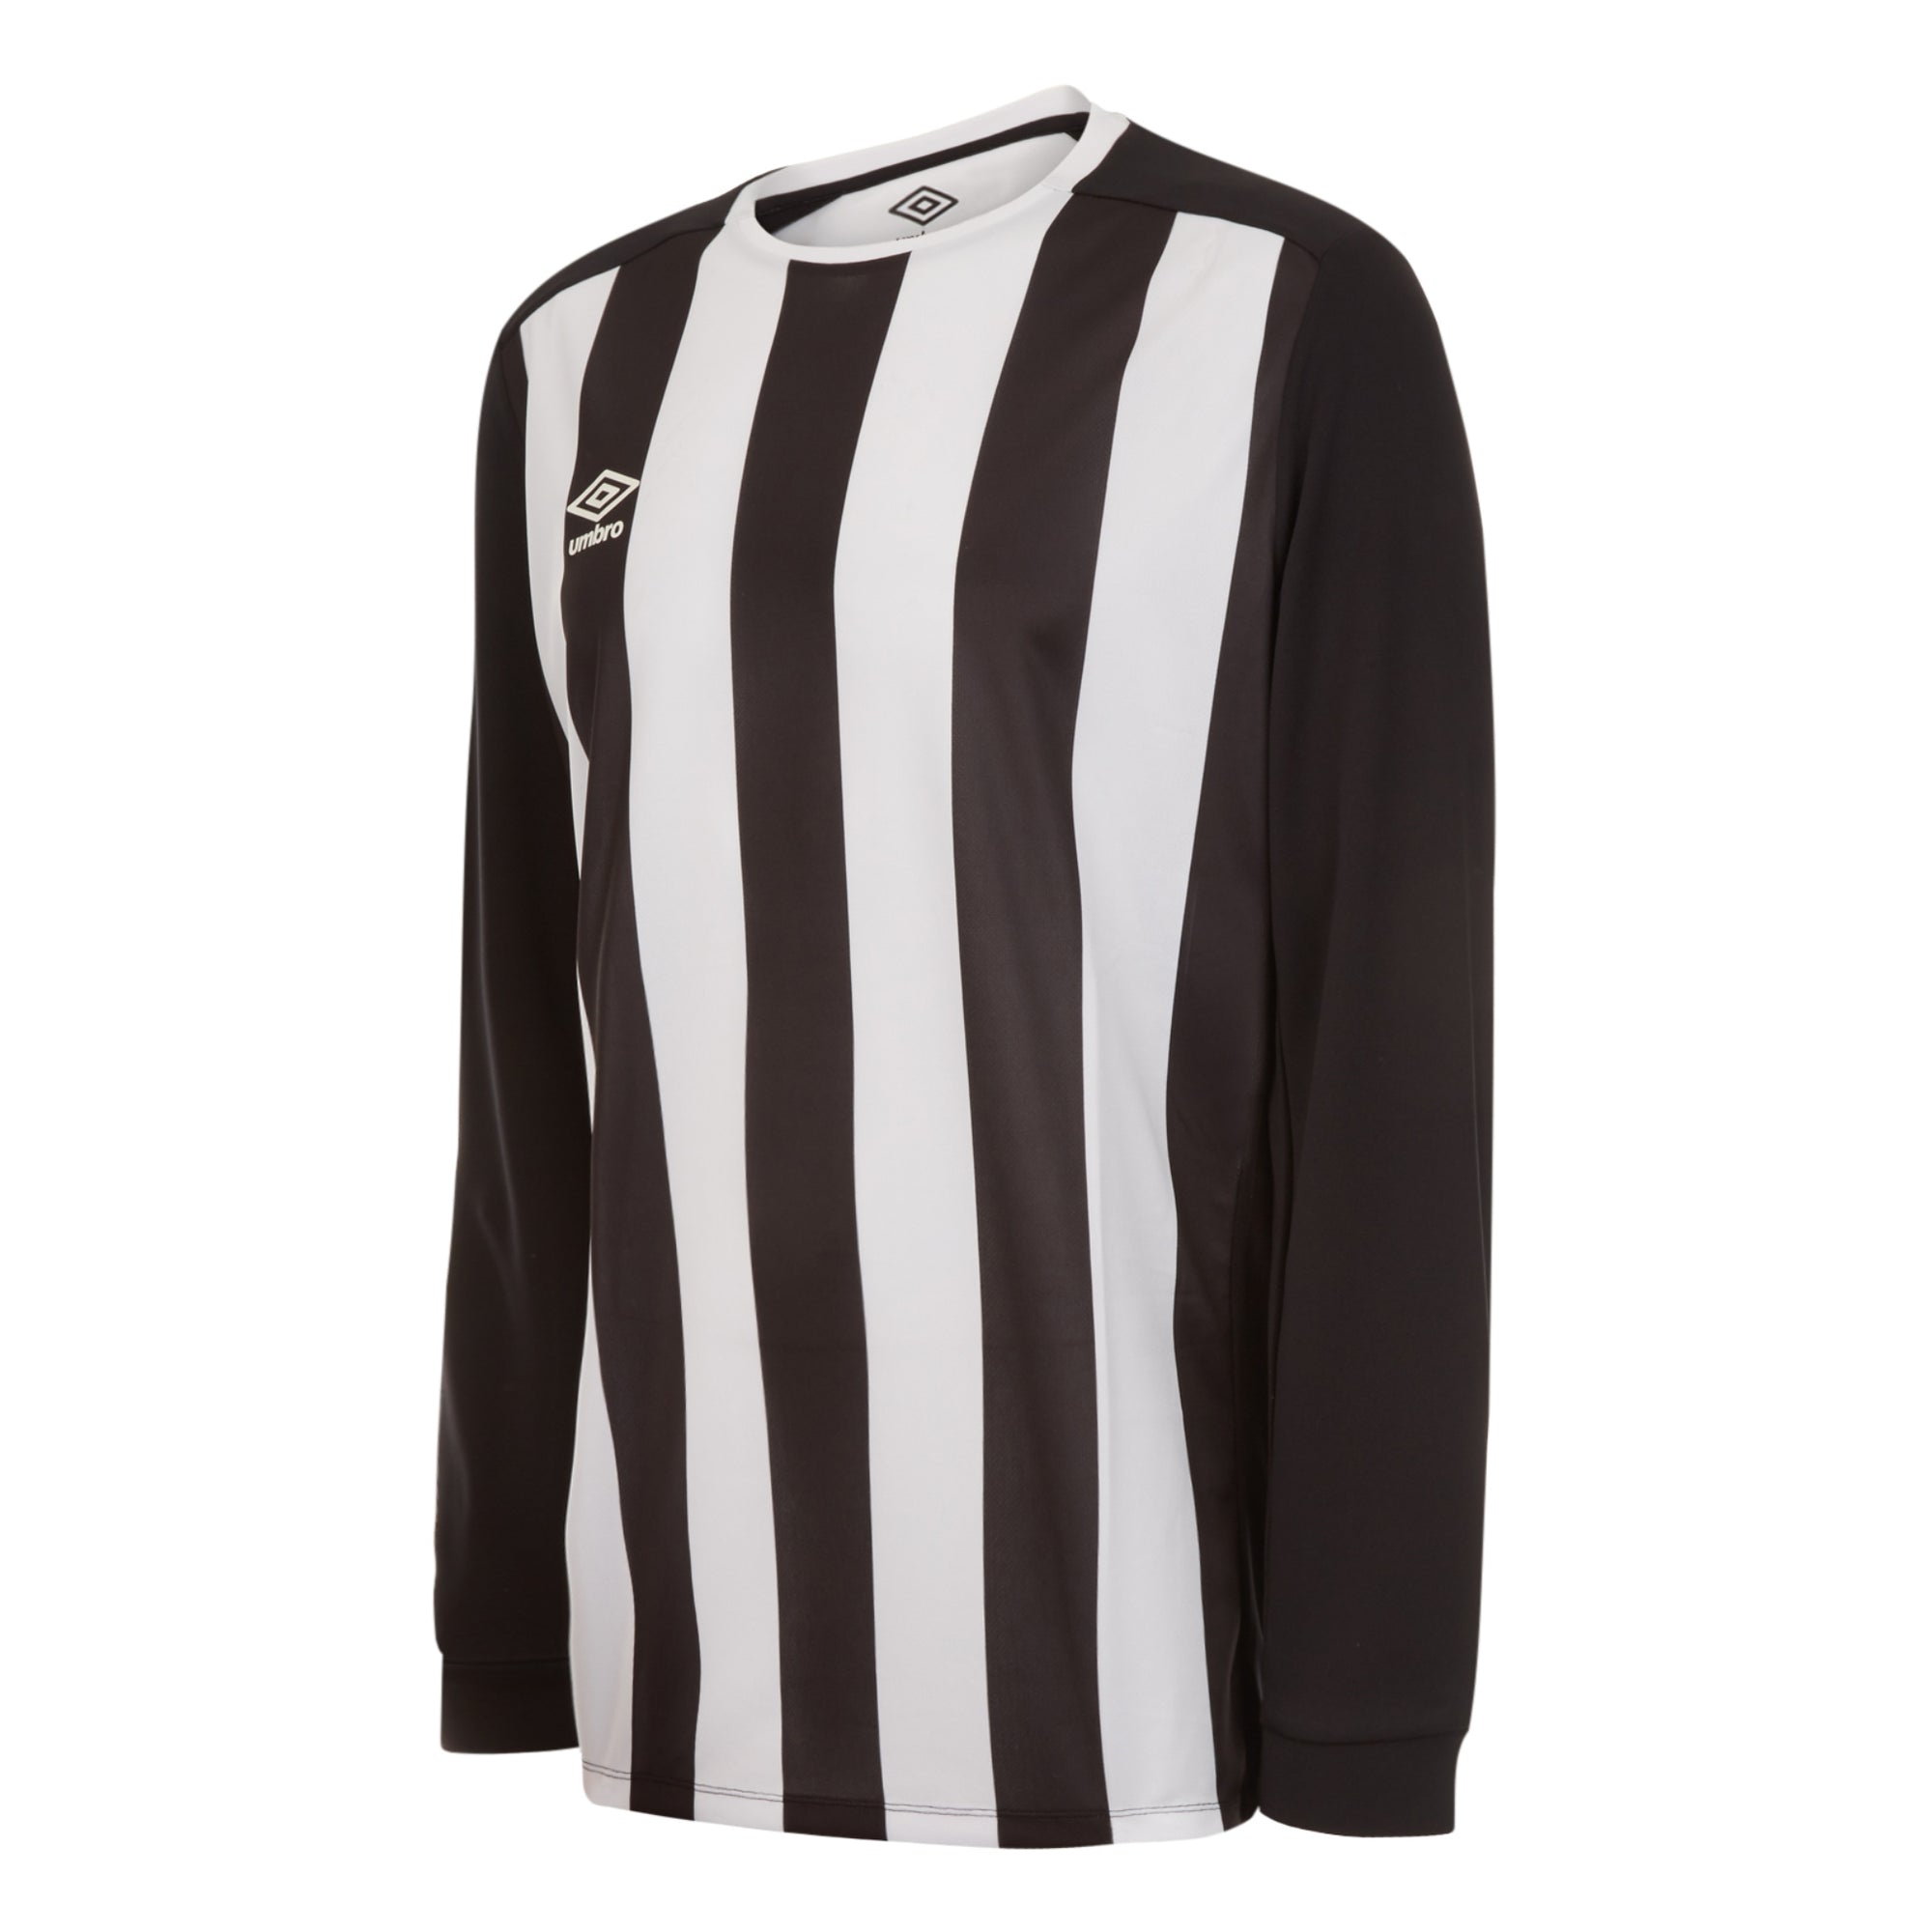 Umbro Milan Jersey LS - Black/White